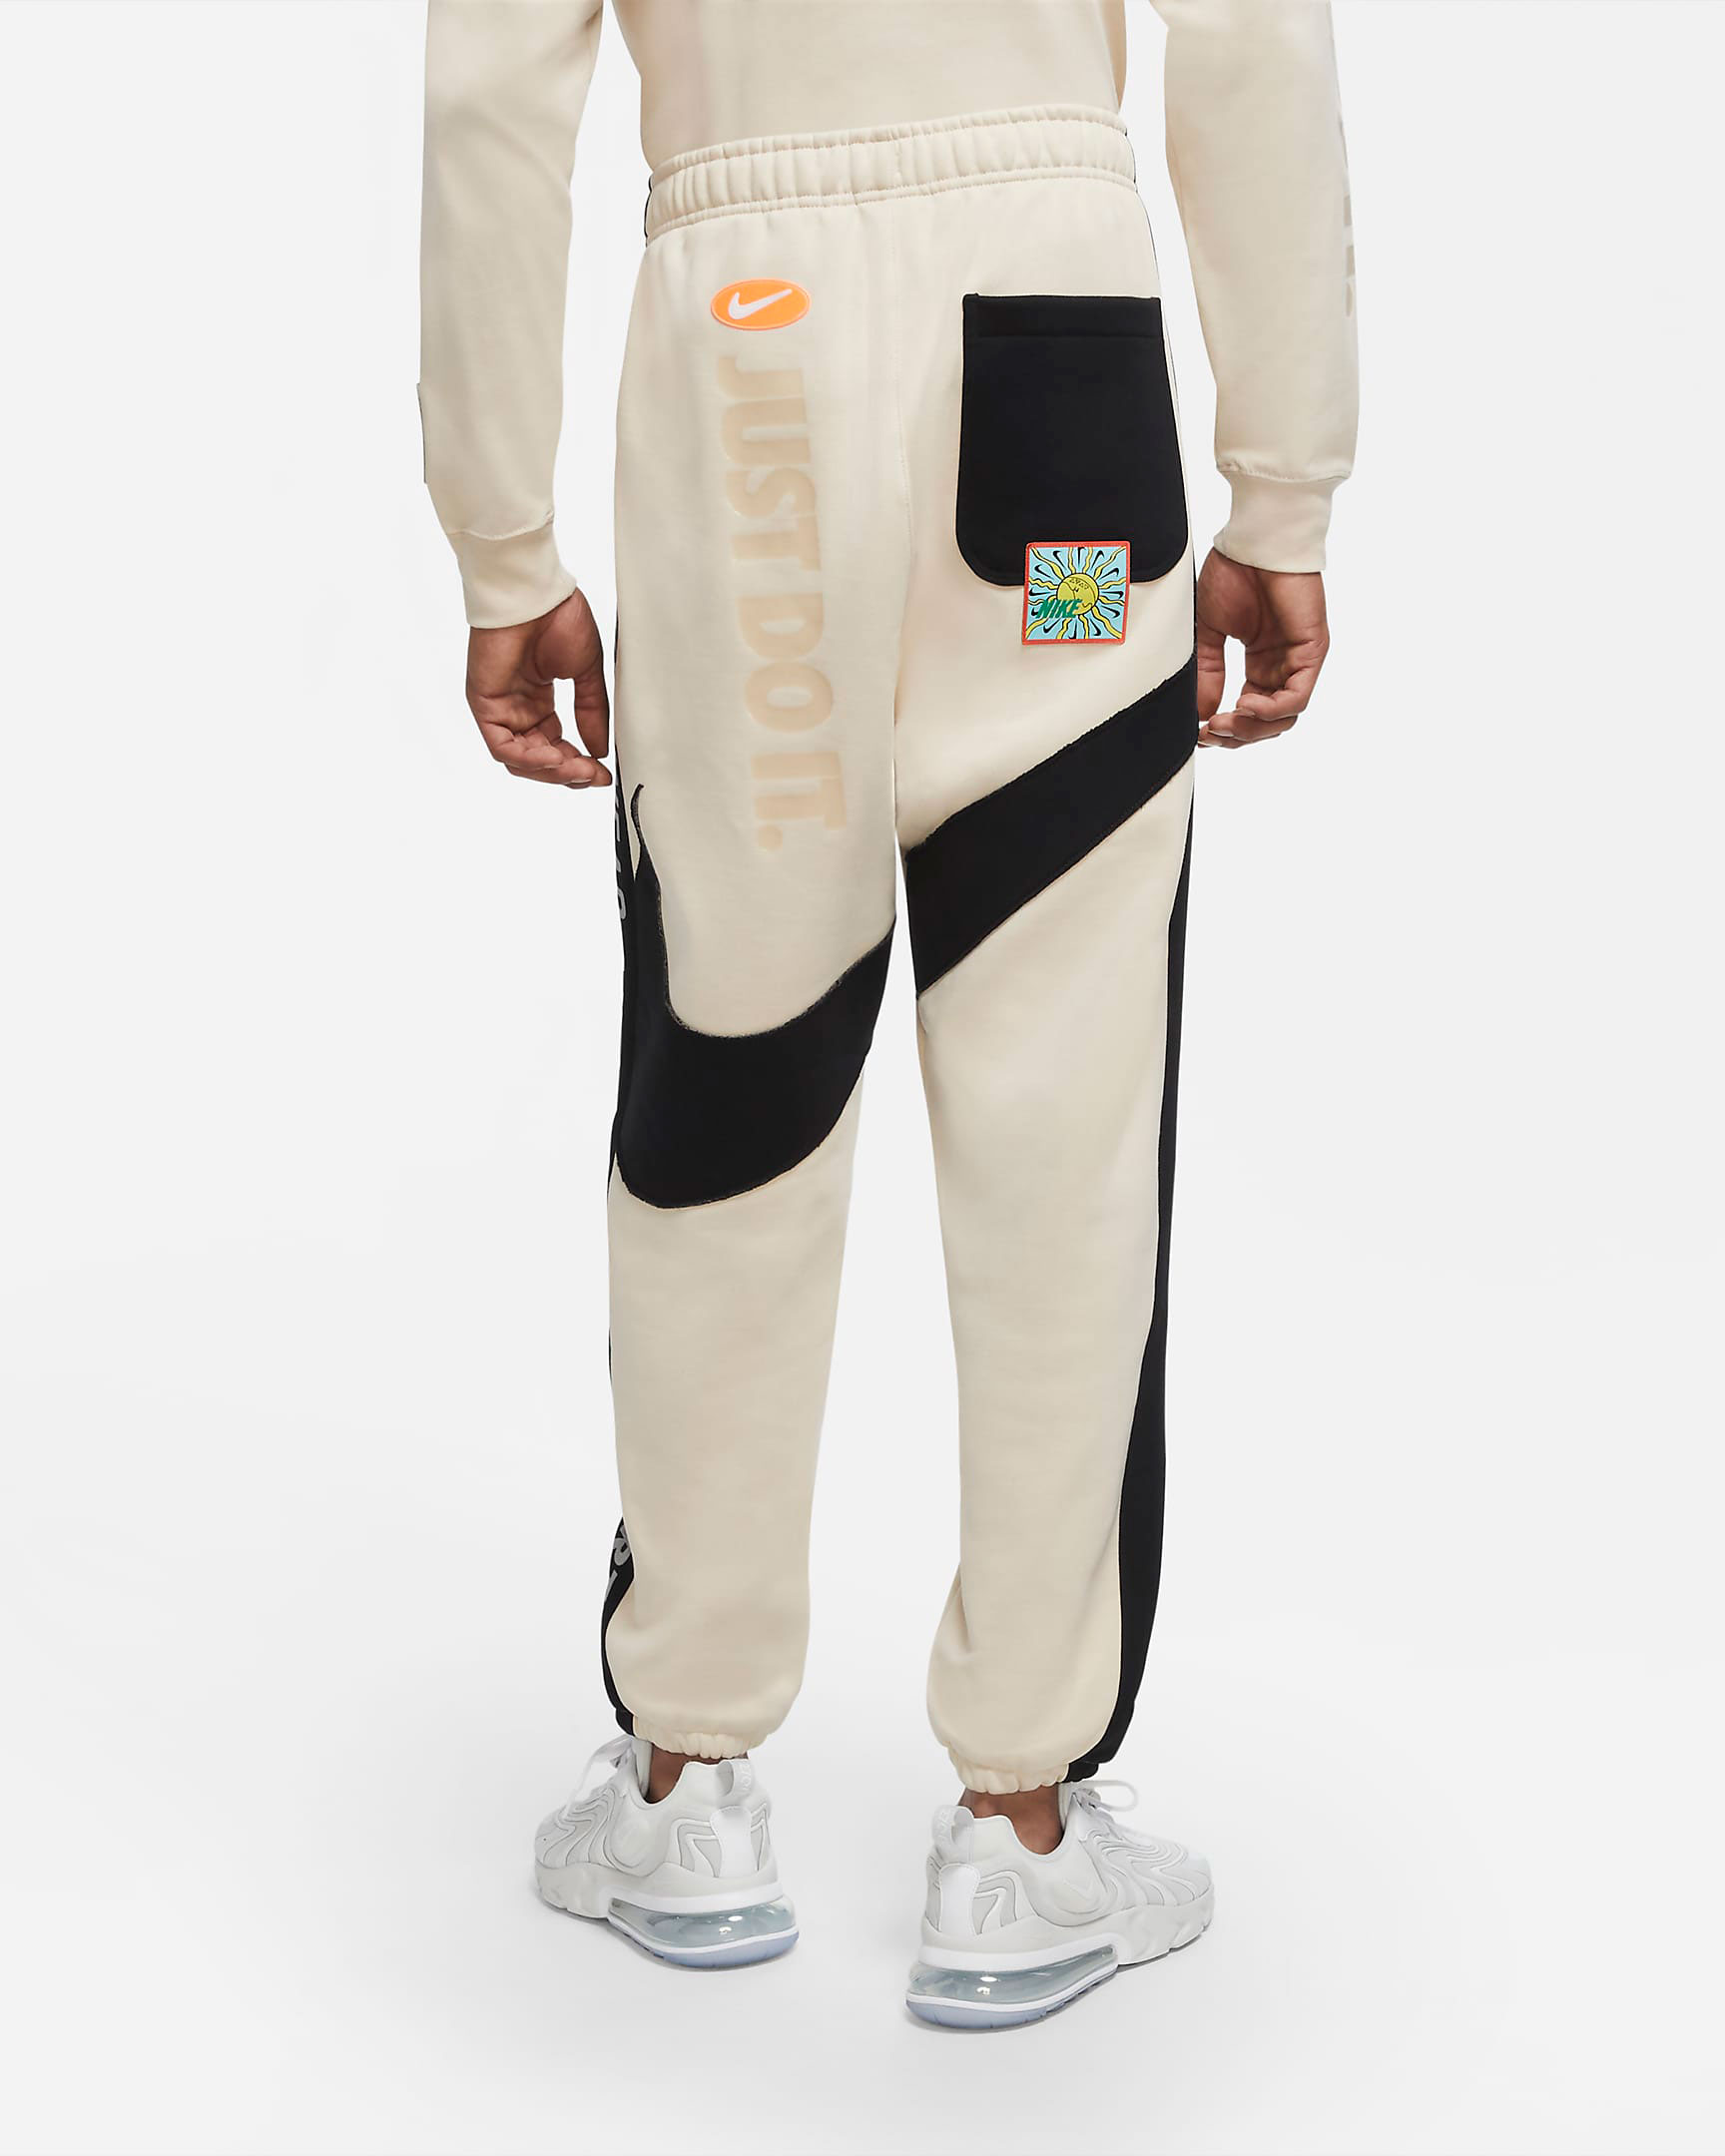 nike-air-max-drip-jogger-pants-oatmeal-2